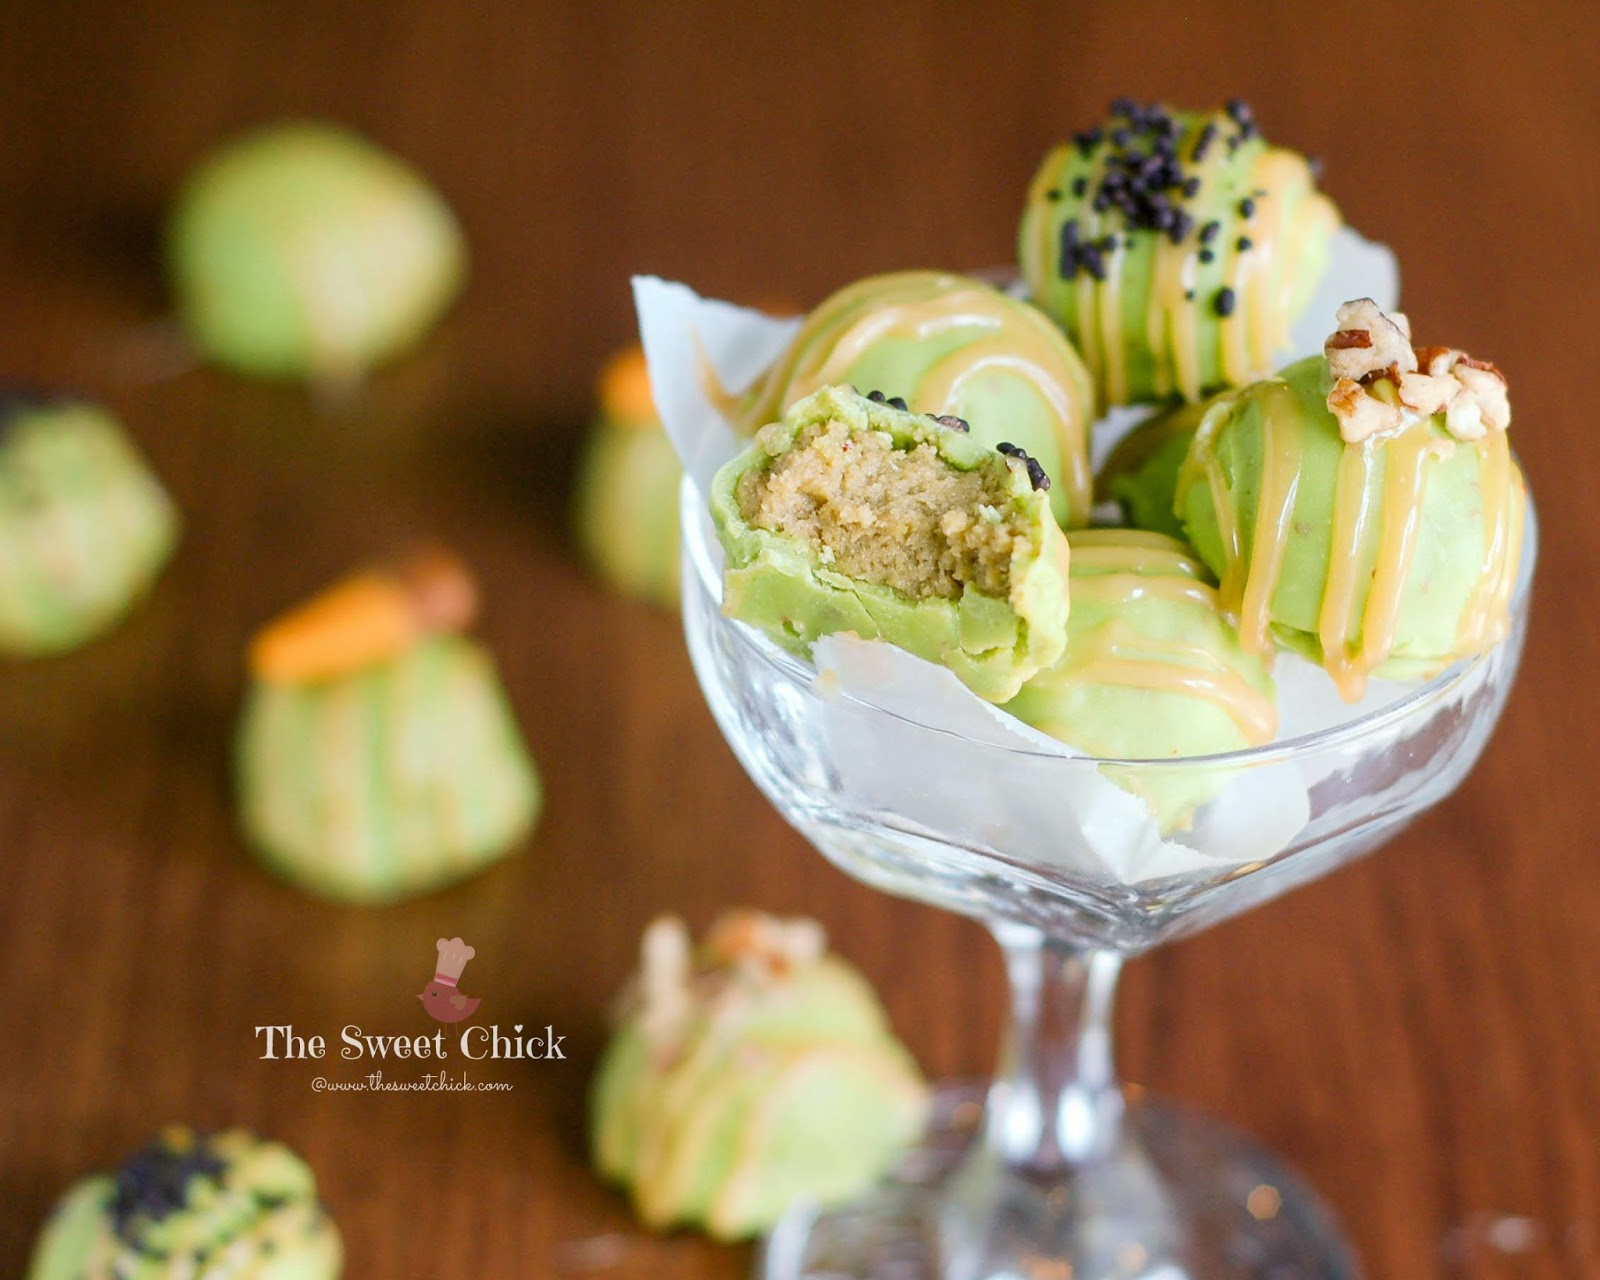 Caramel Apple Oreo Truffle by The Sweet Chick